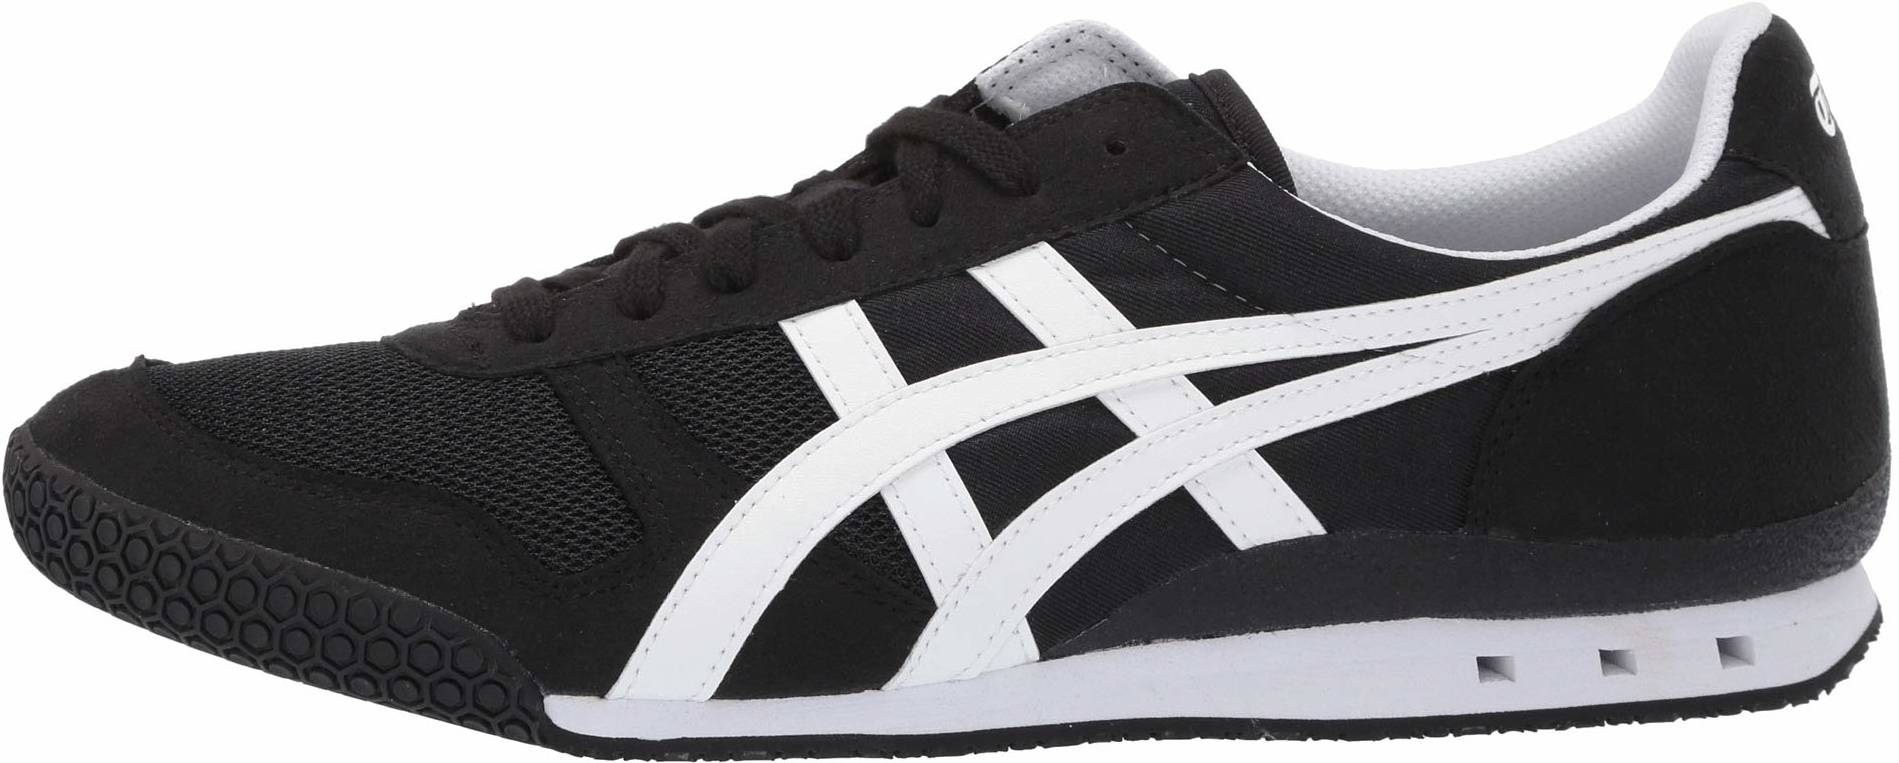 Onitsuka Tiger Ultimate 81 sneakers in 8 colors (only $55) | RunRepeat